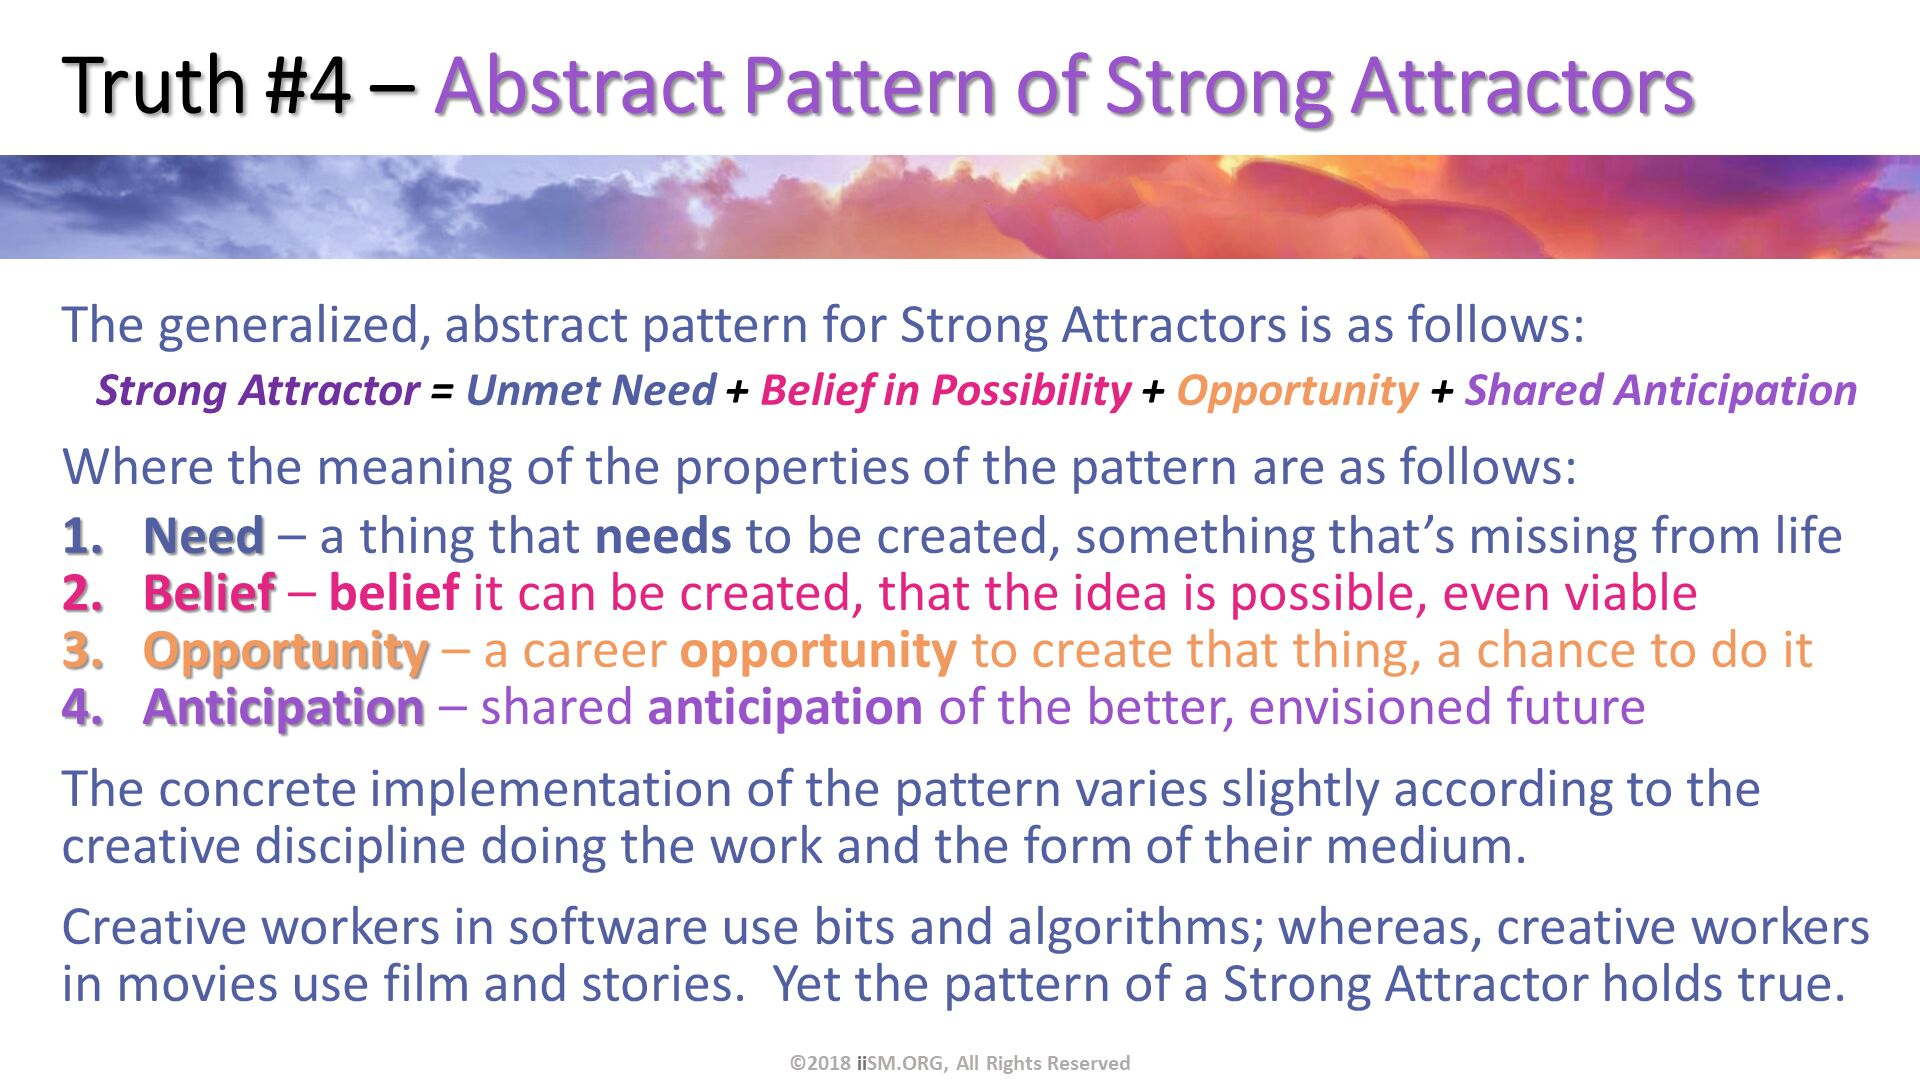 Truth #4 – Abstract Pattern of Strong Attractors. The generalized, abstract pattern for Strong Attractors is as follows: Strong Attractor = Unmet Need + Belief in Possibility + Opportunity + Shared Anticipation Where the meaning of the properties of the pattern are as follows: Need – a thing that needs to be created, something that's missing from life Belief – belief it can be created, that the idea is possible, even viable Opportunity – a career opportunity to create that thing, a chance to do it Anticipation – shared anticipation of the better, envisioned future The concrete implementation of the pattern varies slightly according to the creative discipline doing the work and the form of their medium. Creative workers in software use bits and algorithms; whereas, creative workers in movies use film and stories.  Yet the pattern of a Strong Attractor holds true. ©2018 iiSM.ORG, All Rights Reserved.